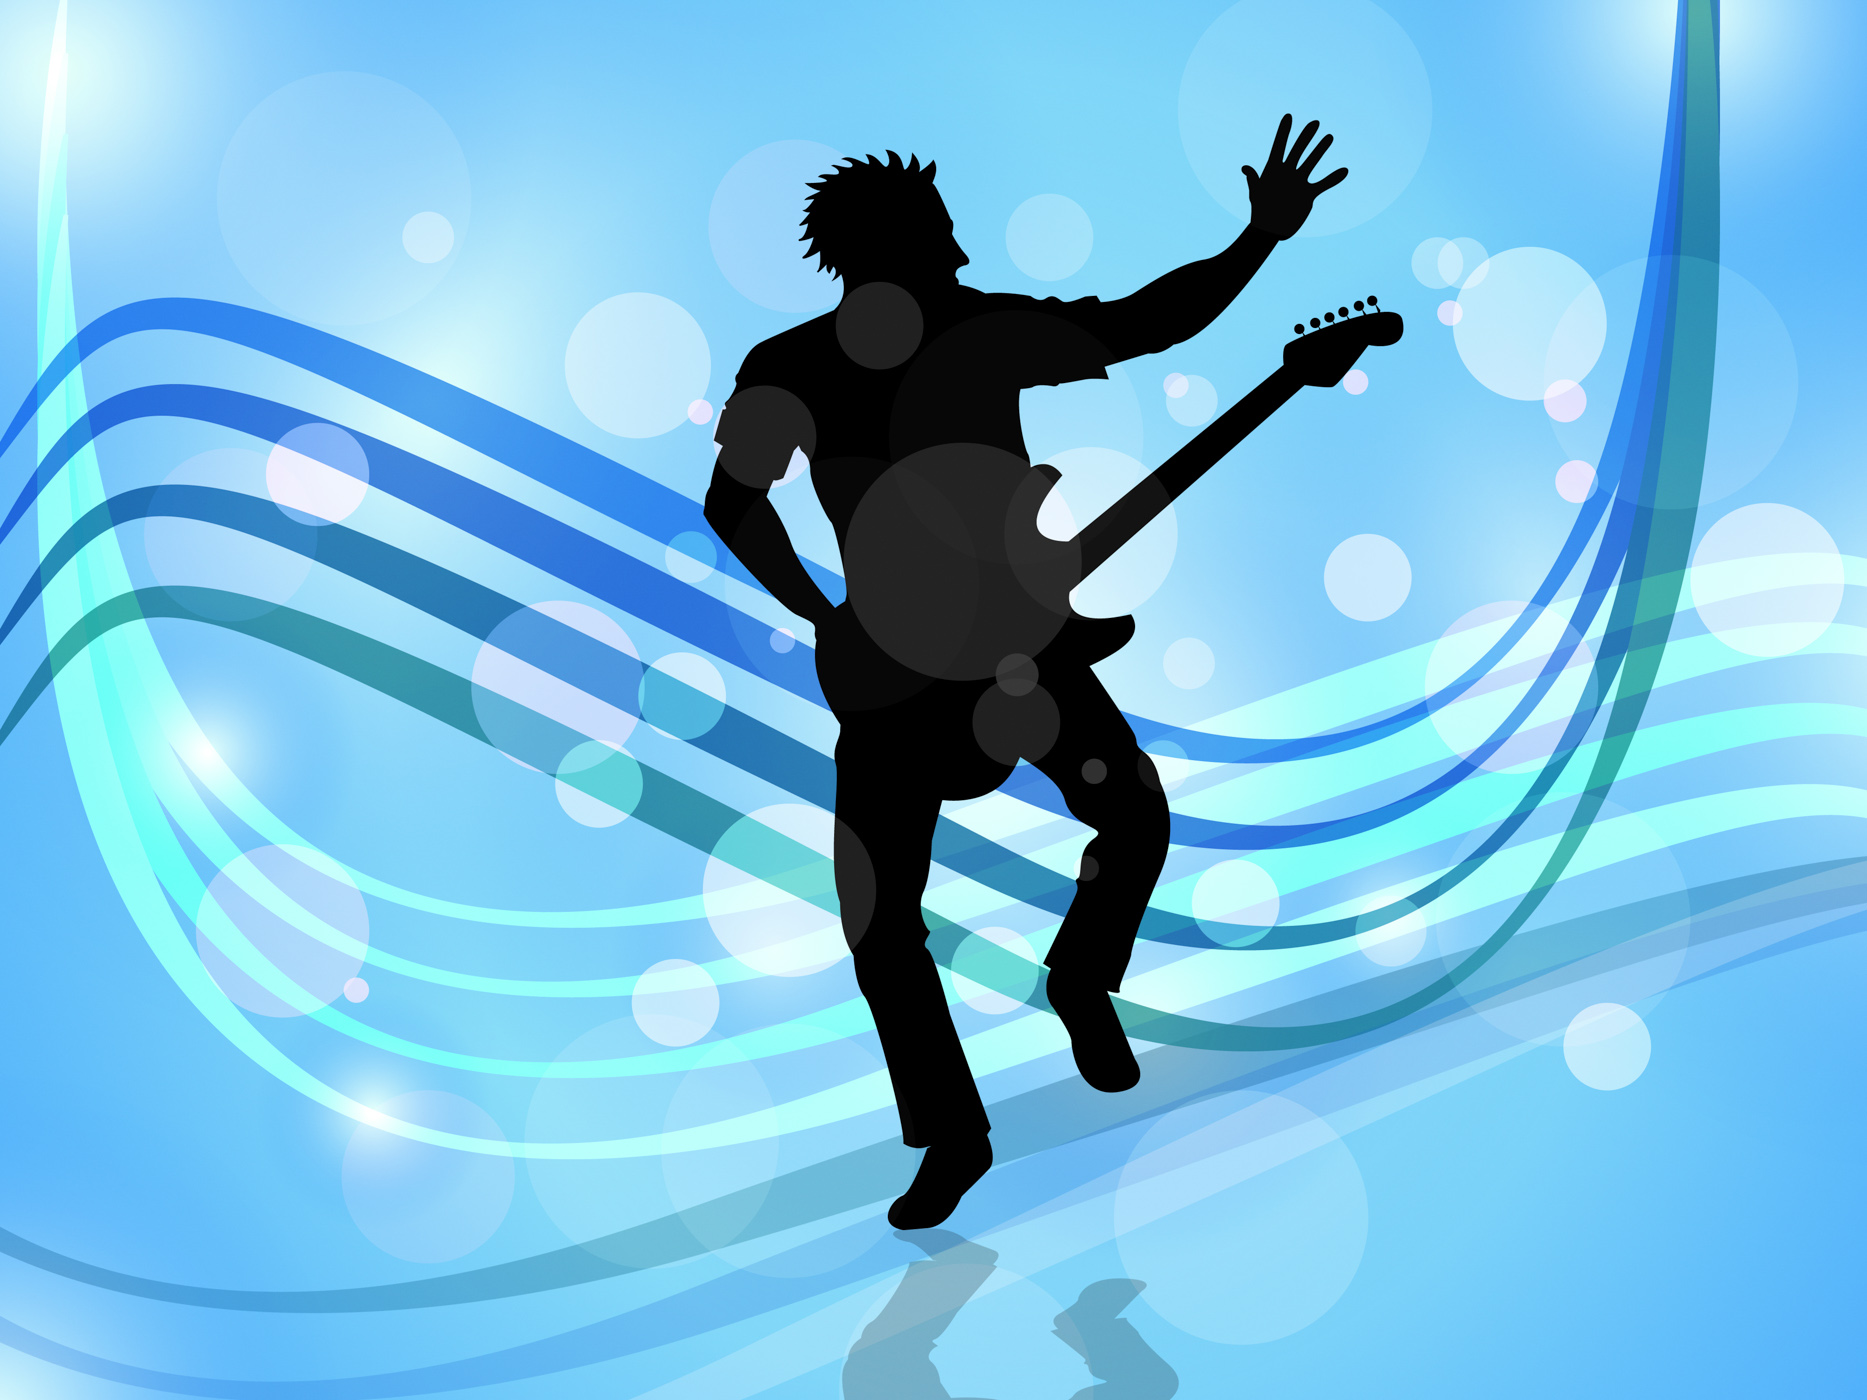 Stage music indicates live event and audio photo